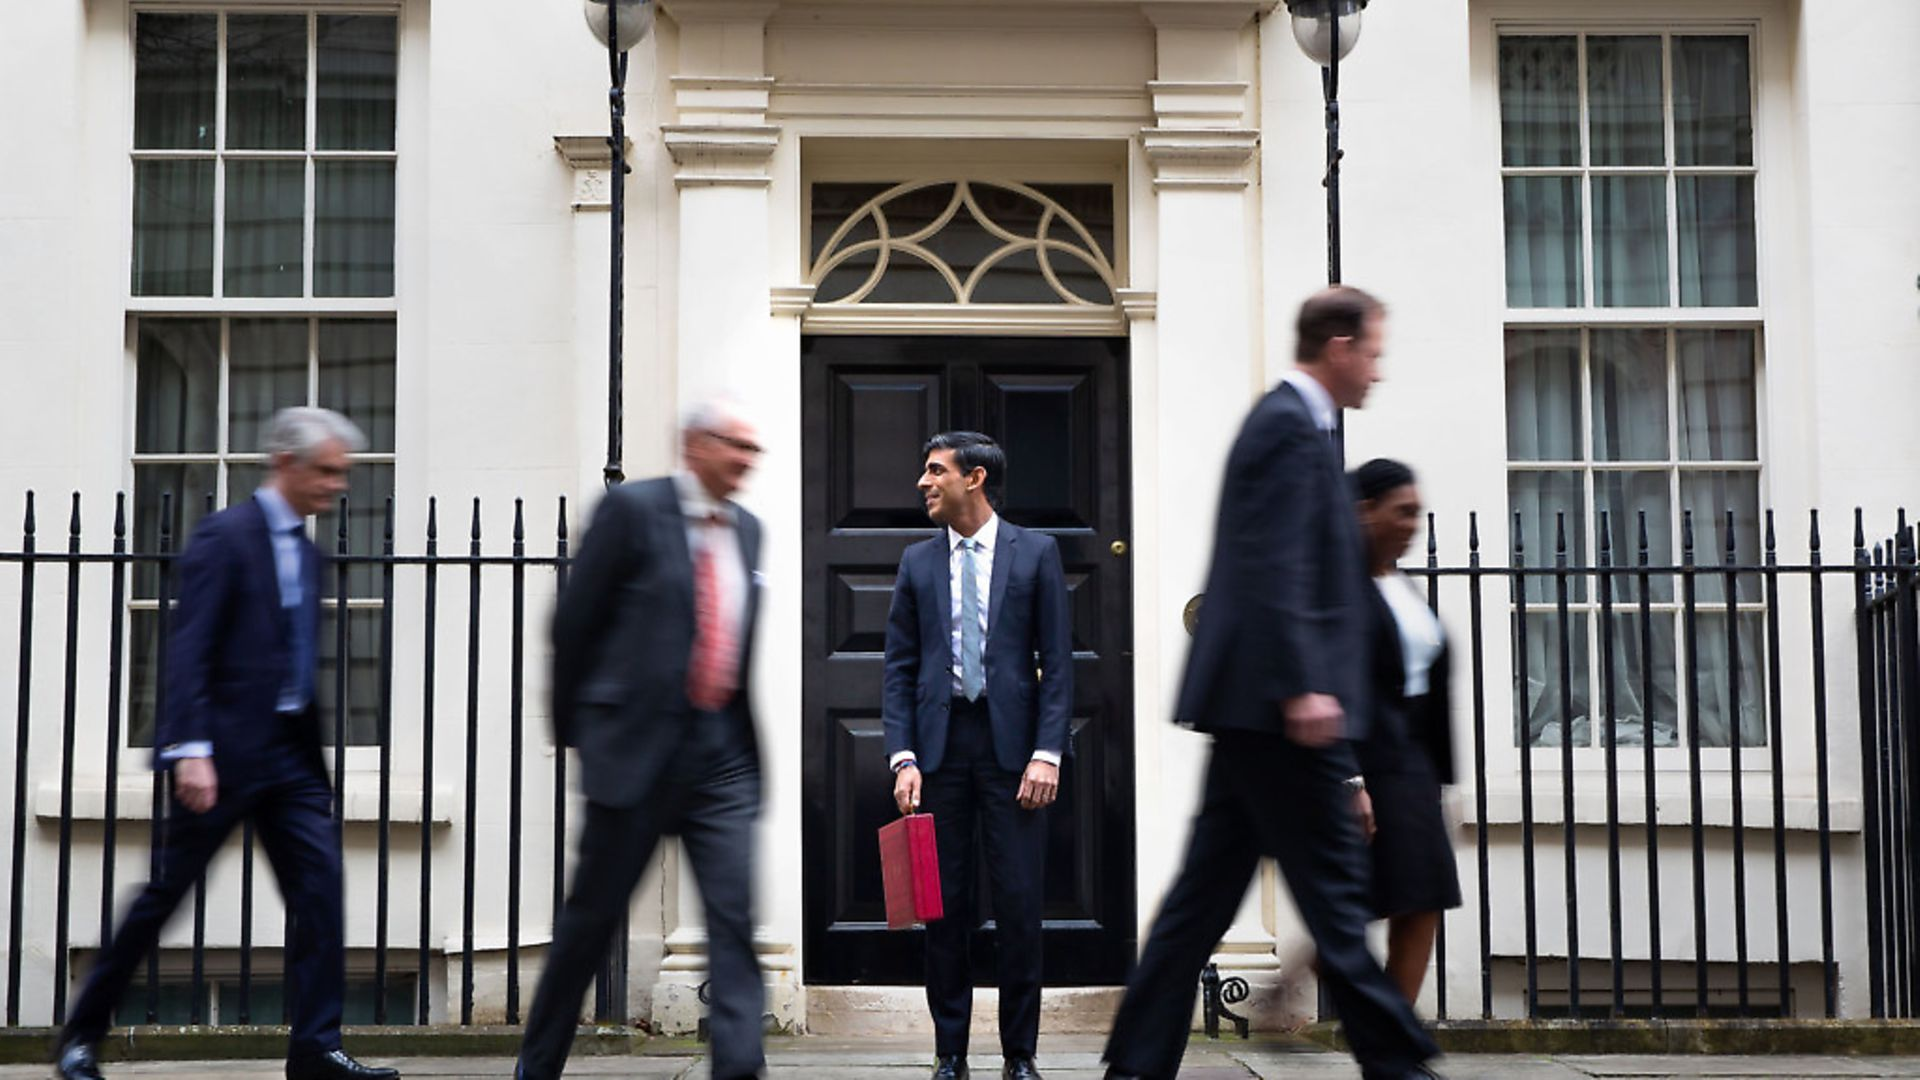 Chancellor Rishi Sunak outside 11 Downing Street before heading to the House of Commons to deliver his budget. Photograph: Aaron Chown/PA. - Credit: PA